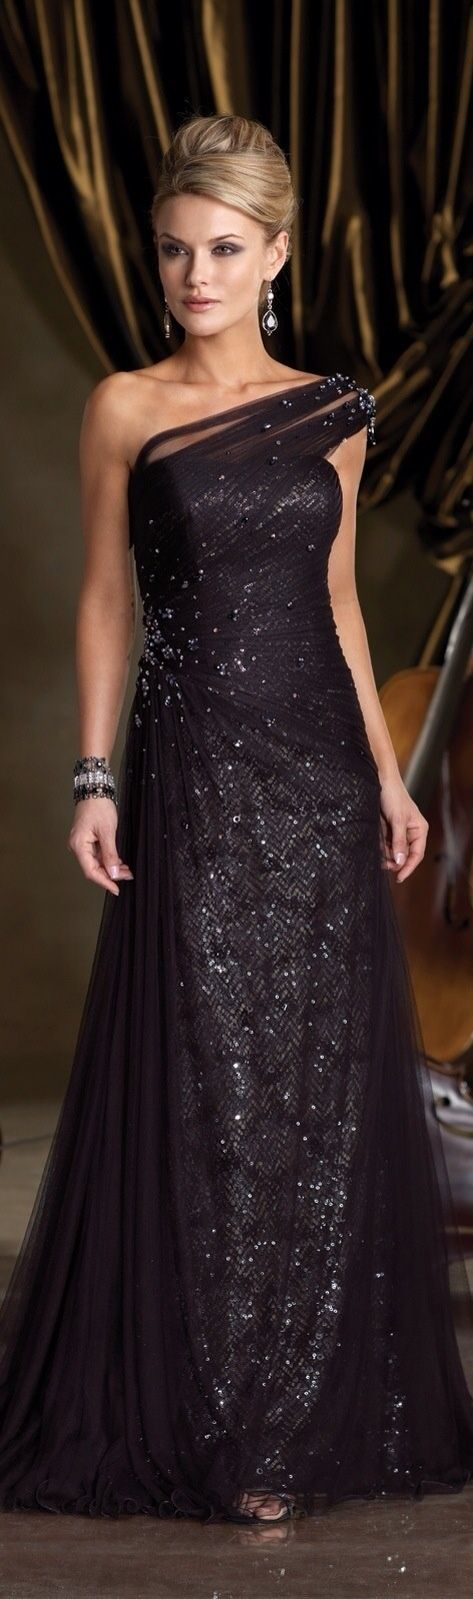 Black Sparkle Dress by ollie